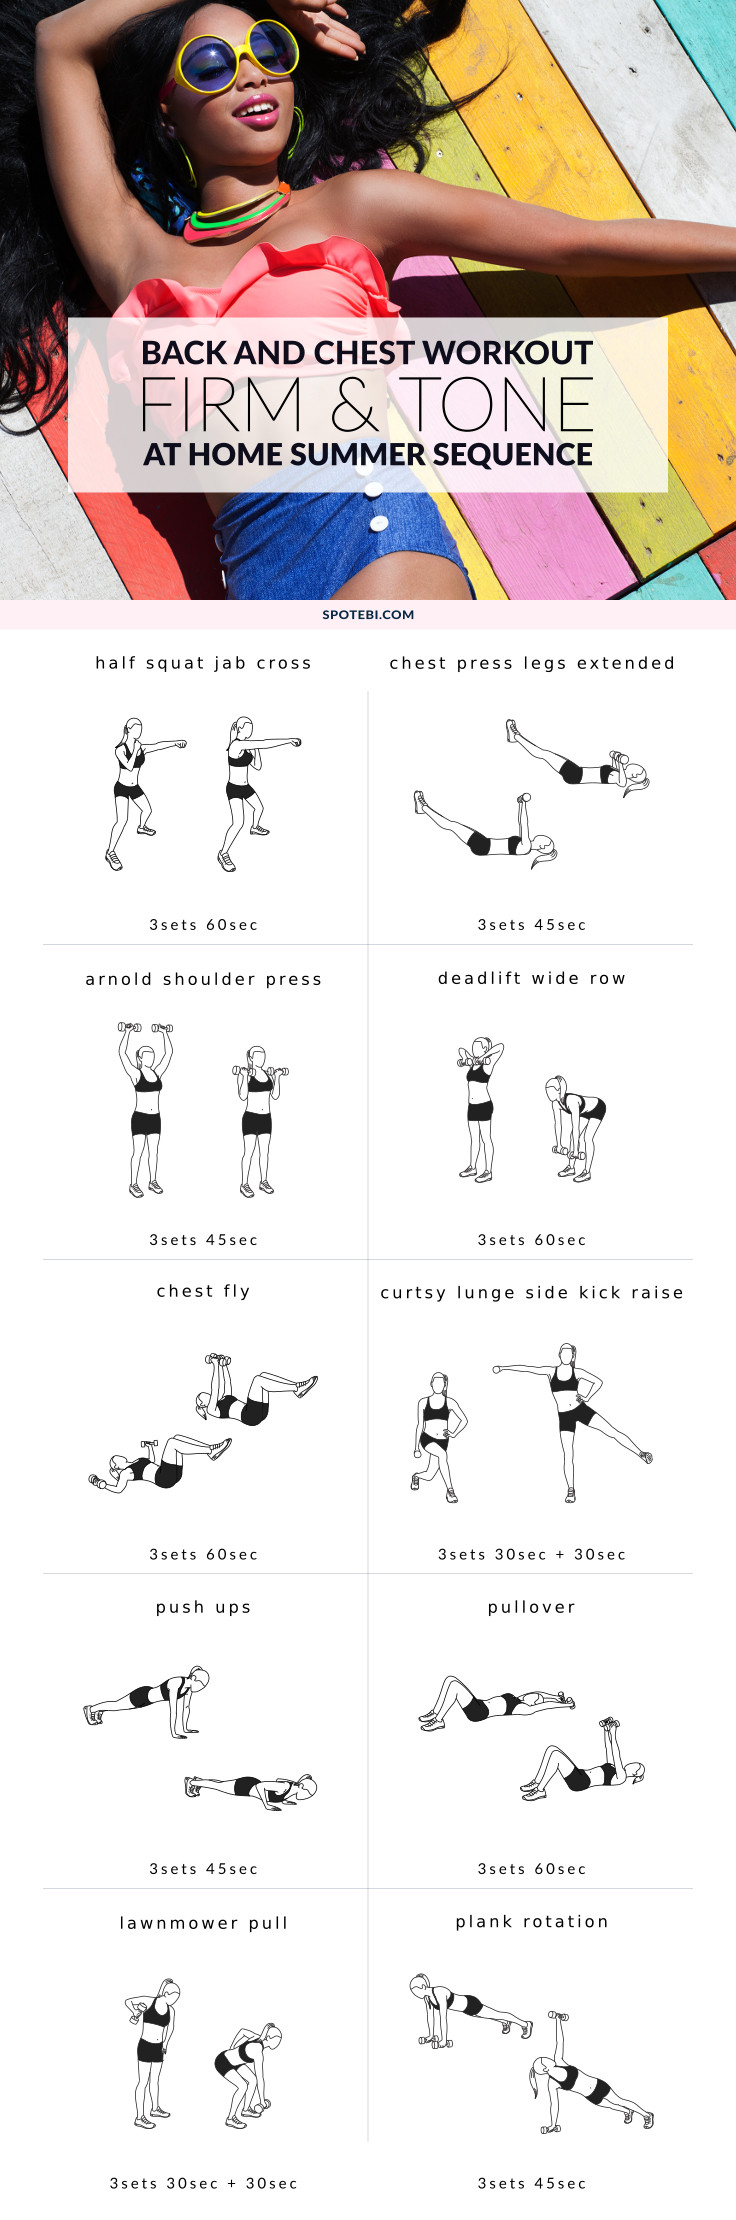 Grab a set of dumbbells and take thirty minutes to sculpt some seriously sexy chest and back! This upper body workout will help you firm up your chest, improve your posture and get a sleek, toned back. https://www.spotebi.com/workout-routines/chest-back-bikini-body-workout-women/